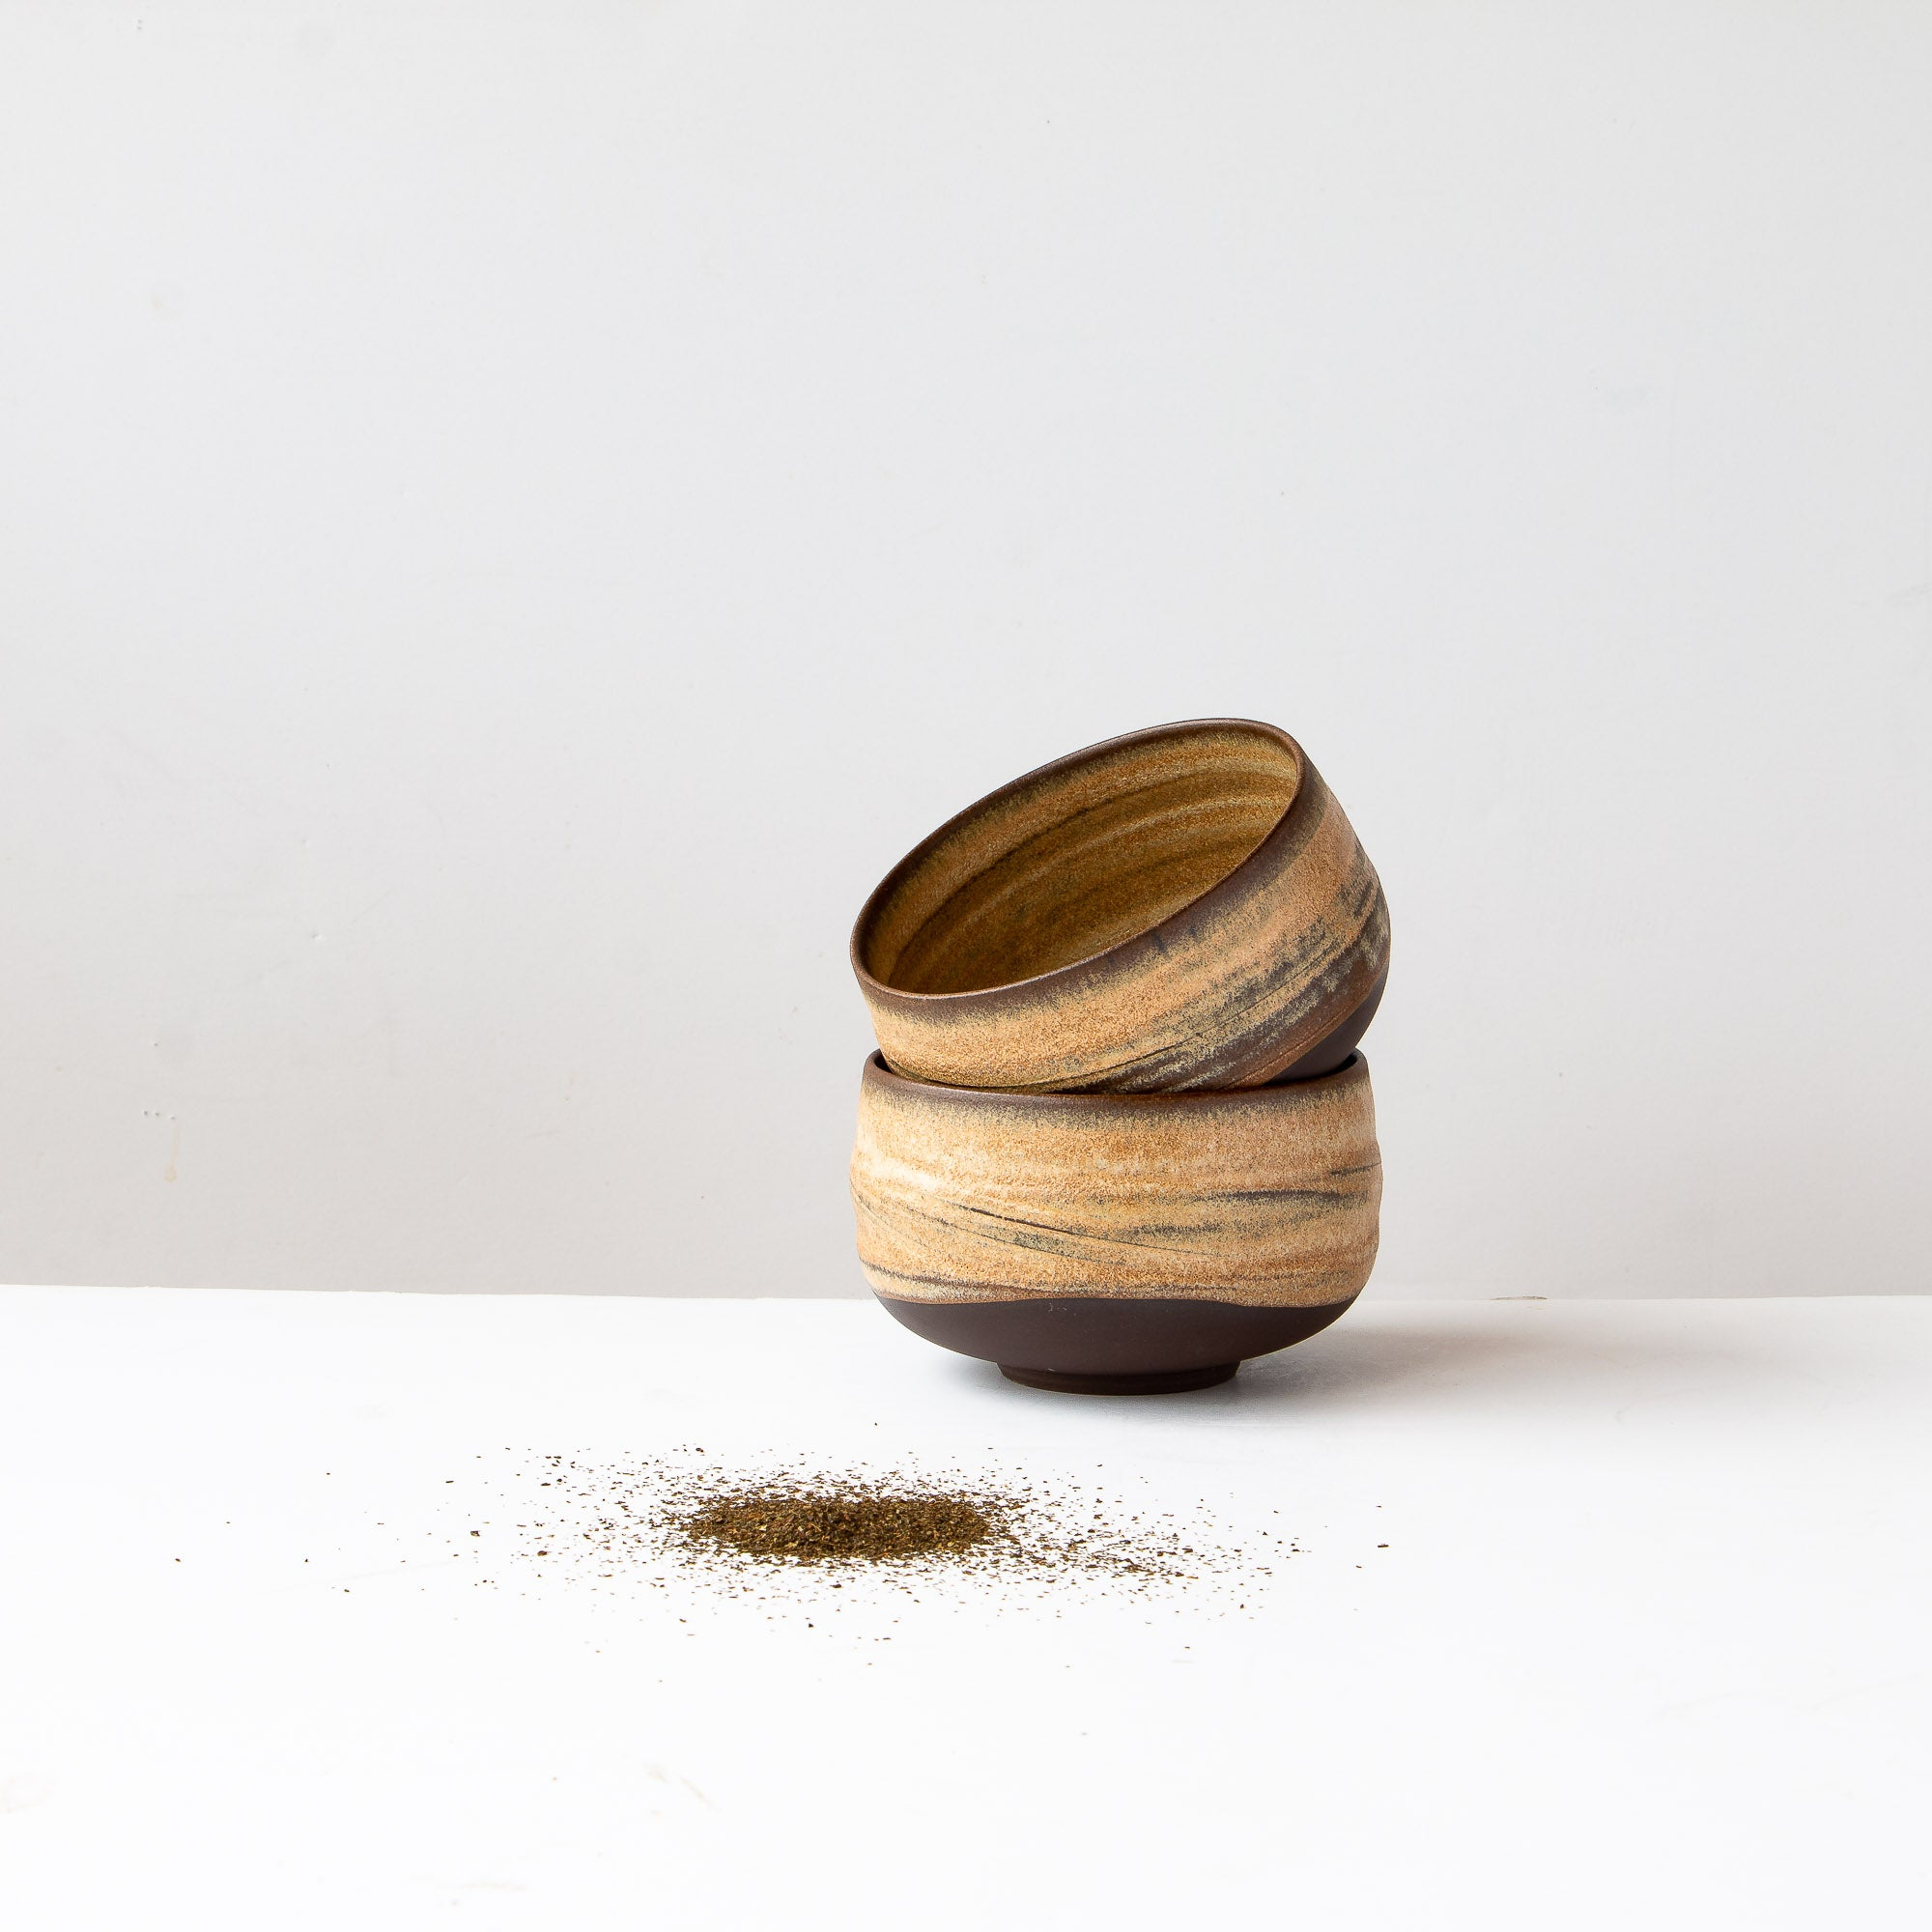 Handcrafted Matcha Bowl (Chawan ) in Black Stoneware - Sold by Chic & Basta